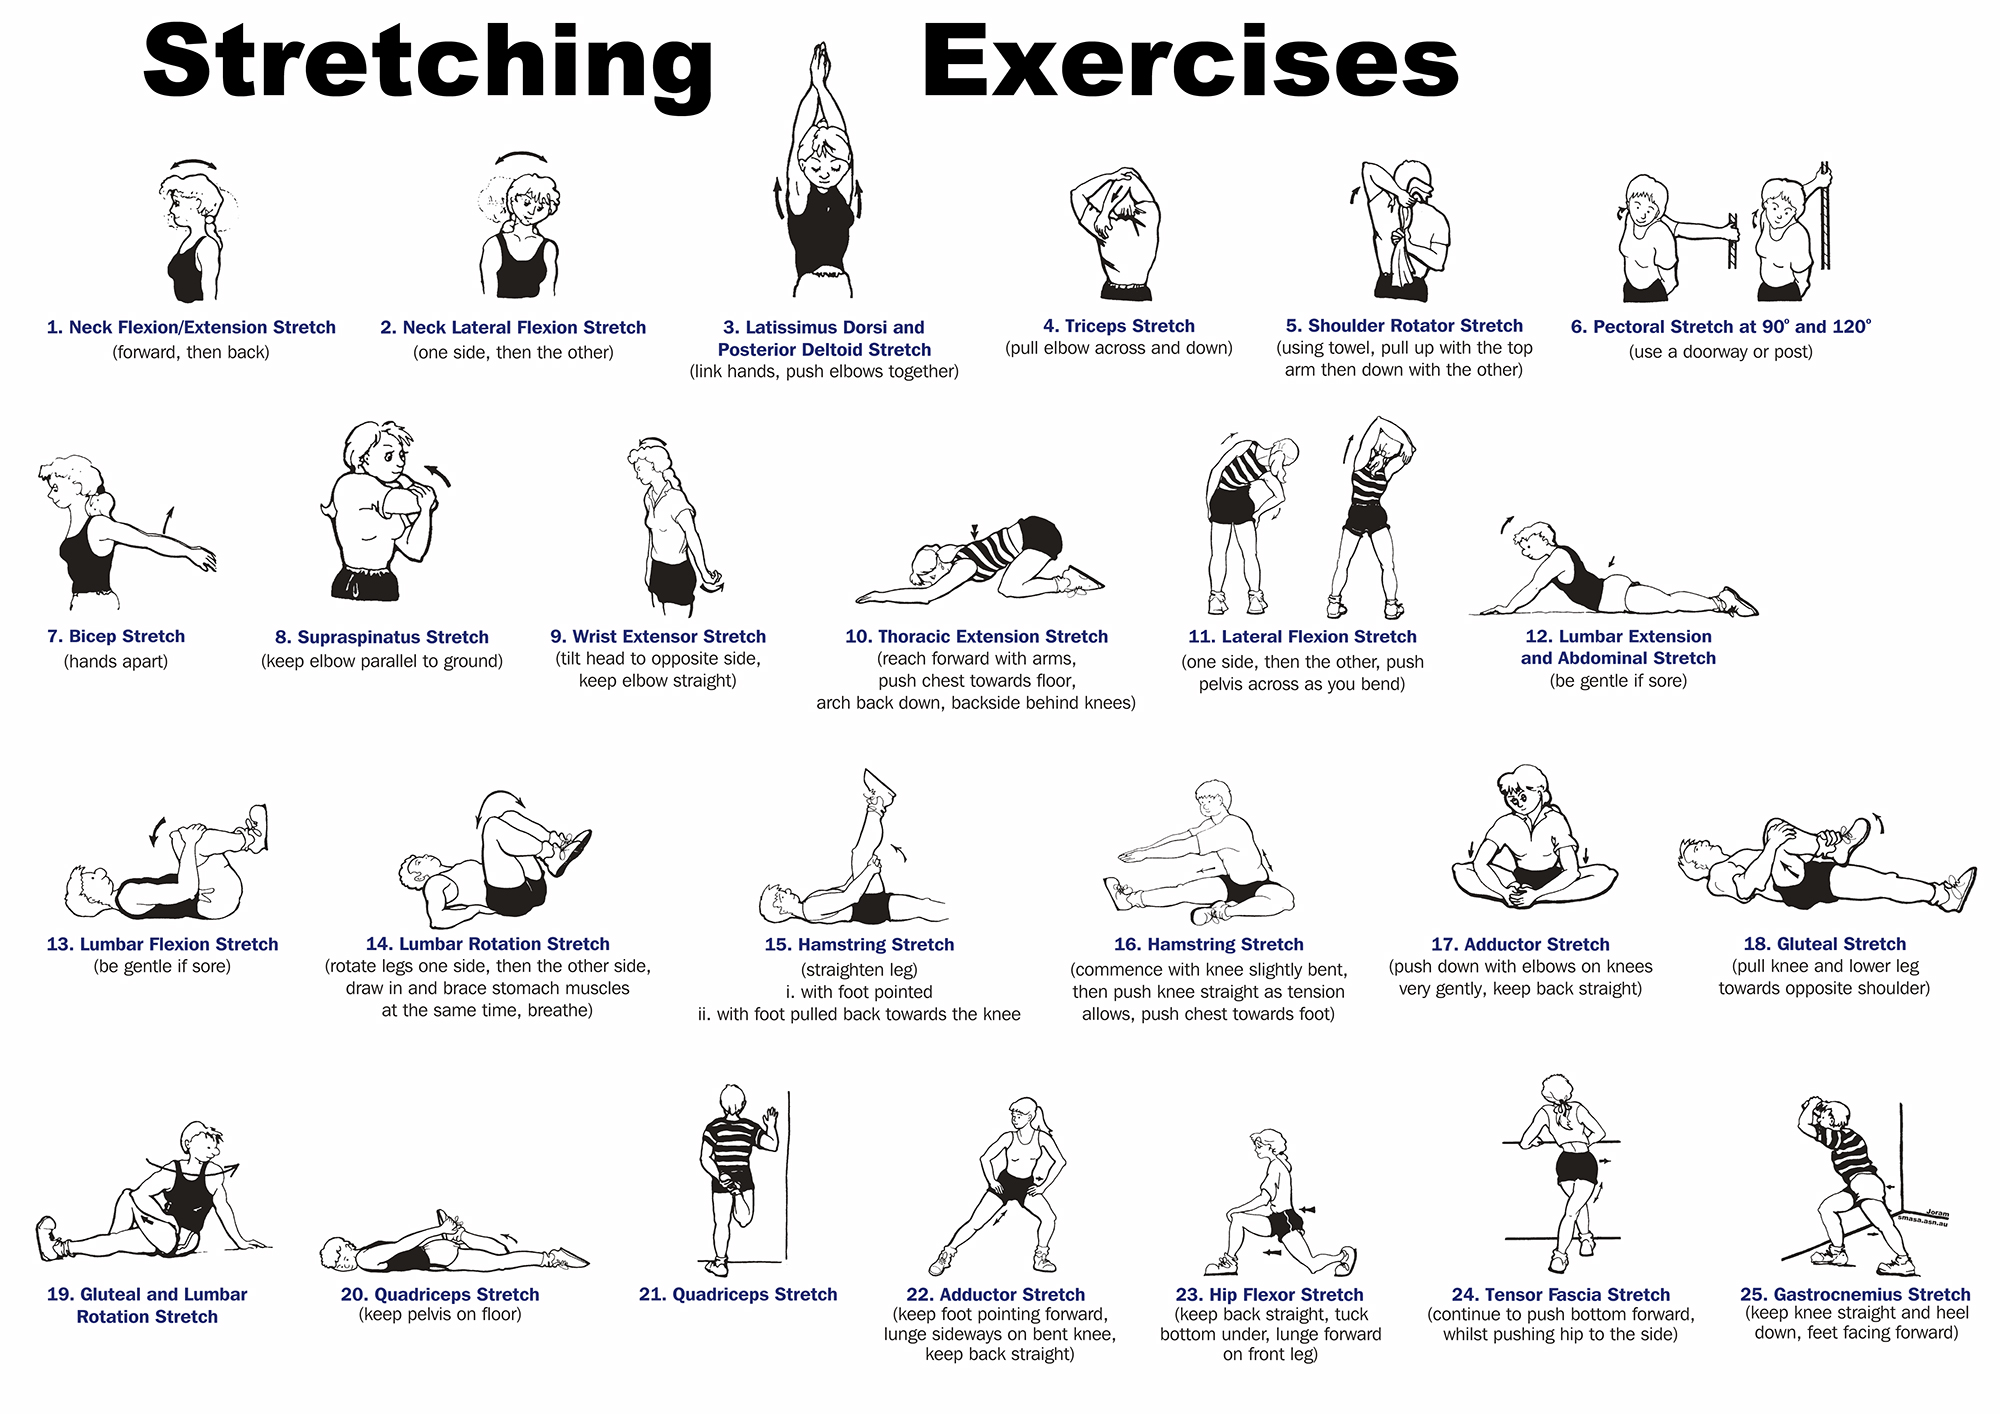 Daily Stretching Exercises